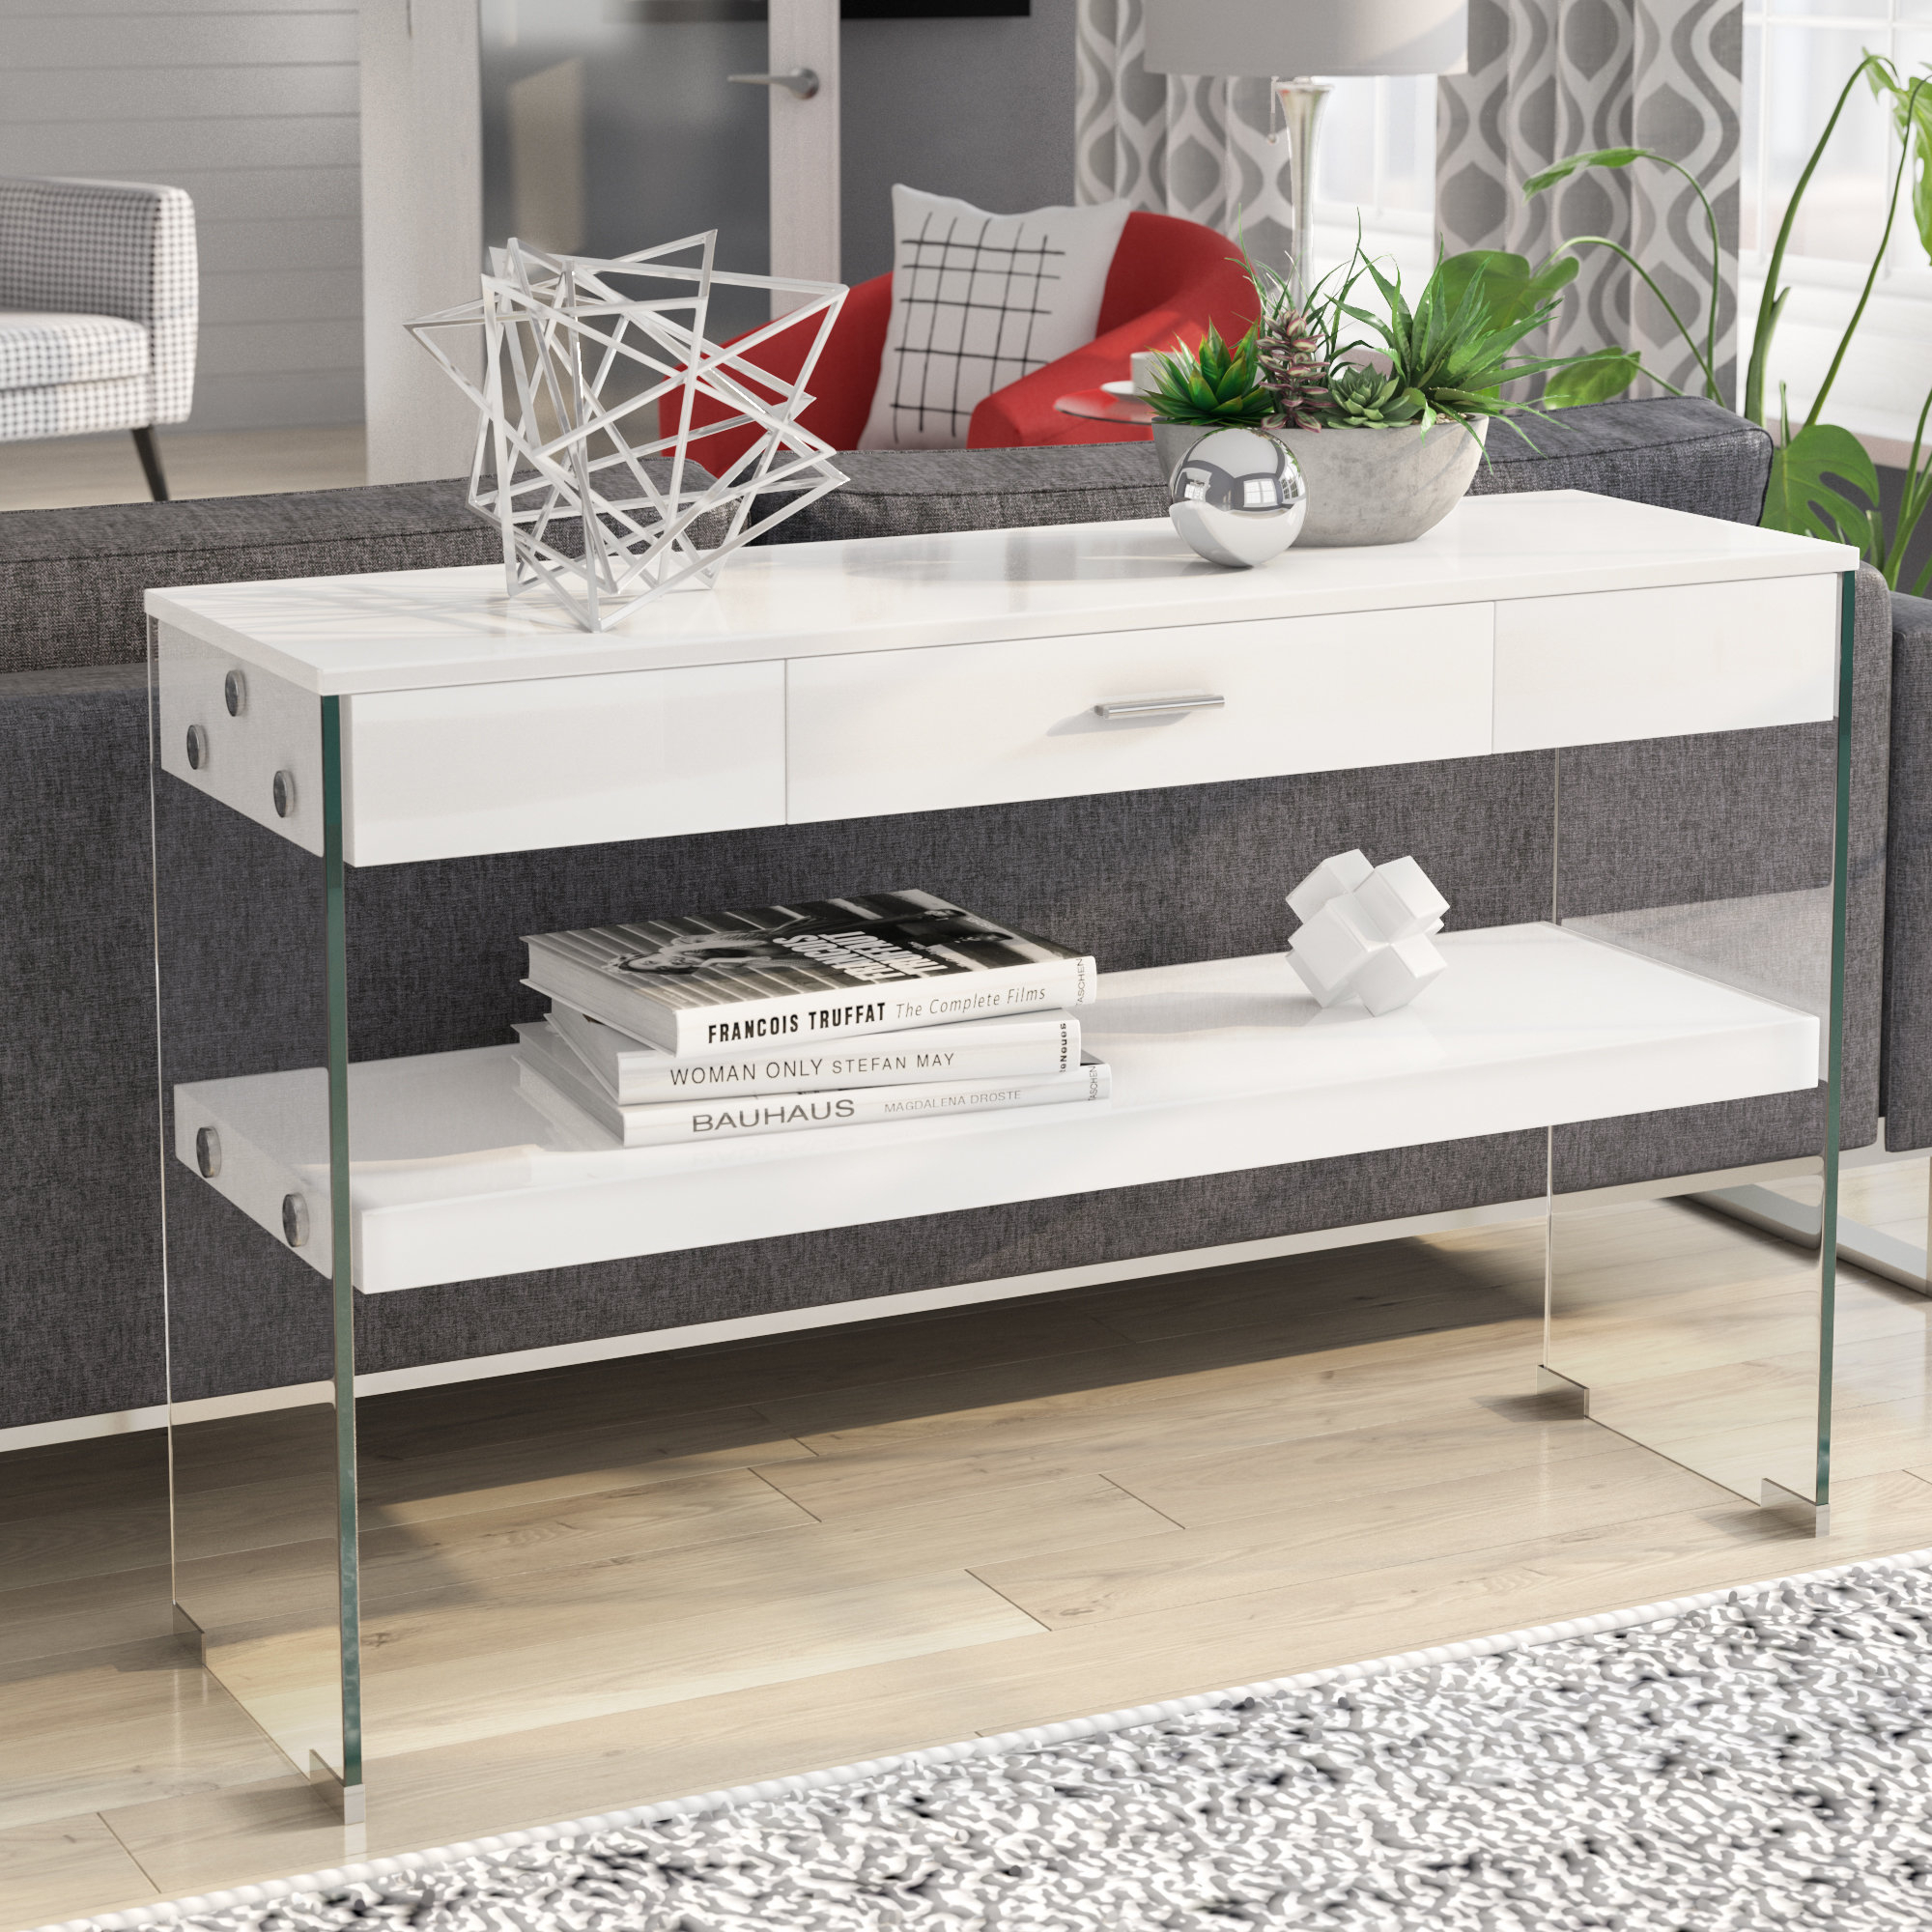 Industrial Console Tables You'll Love | Wayfair With Regard To Parsons Grey Marble Top & Dark Steel Base 48x16 Console Tables (View 7 of 30)